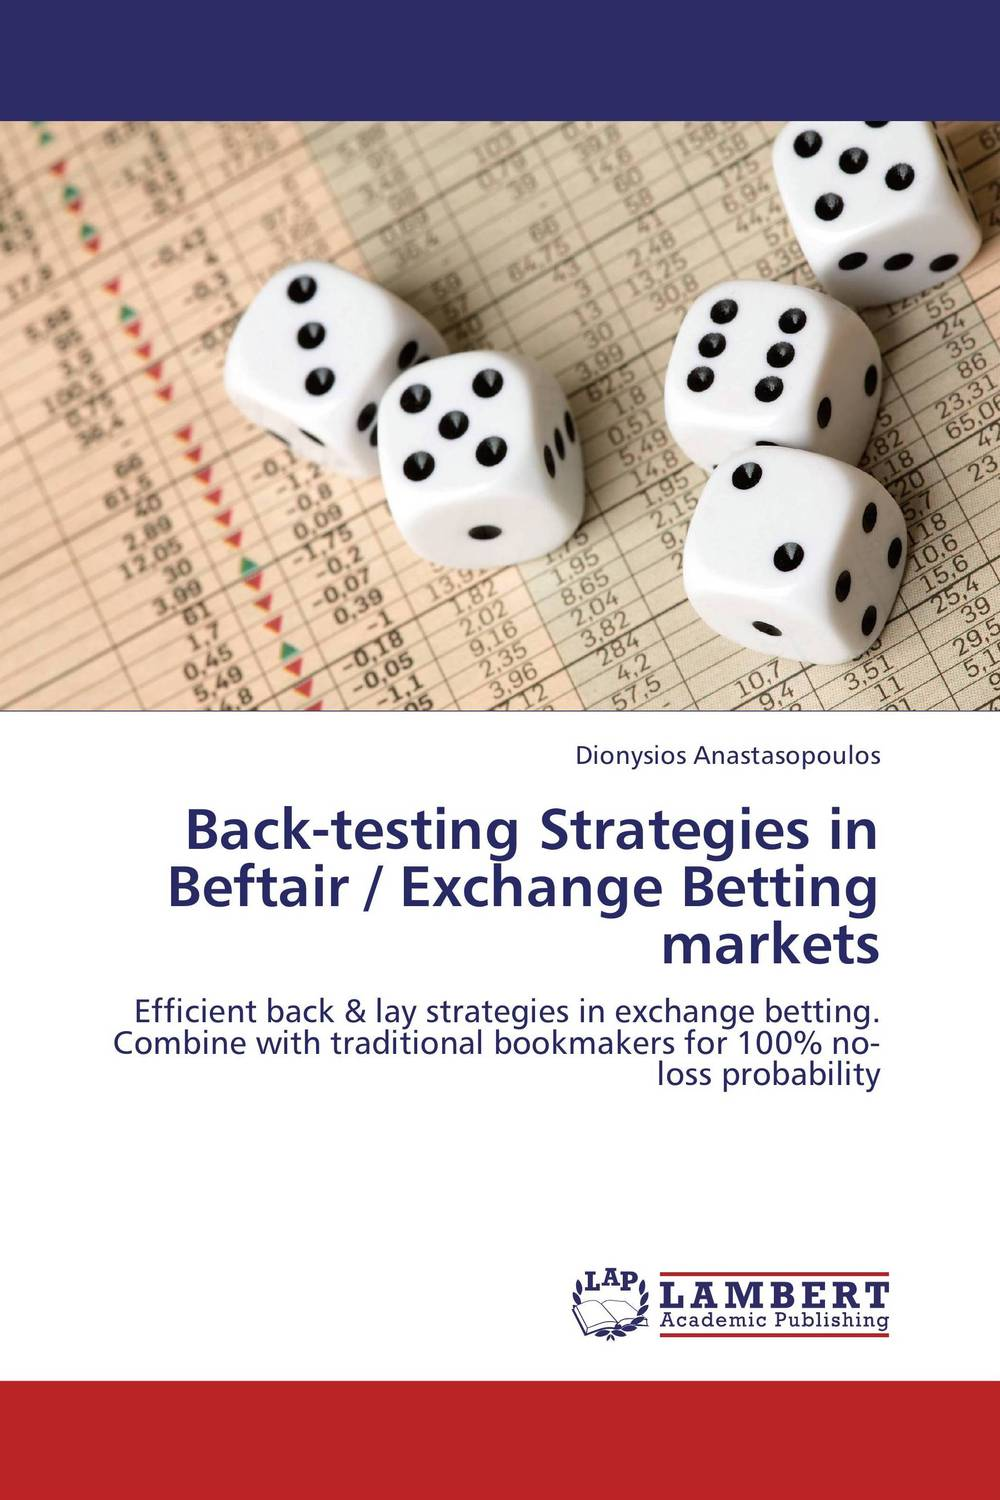 Back-testing Strategies in Beftair / Exchange Betting markets